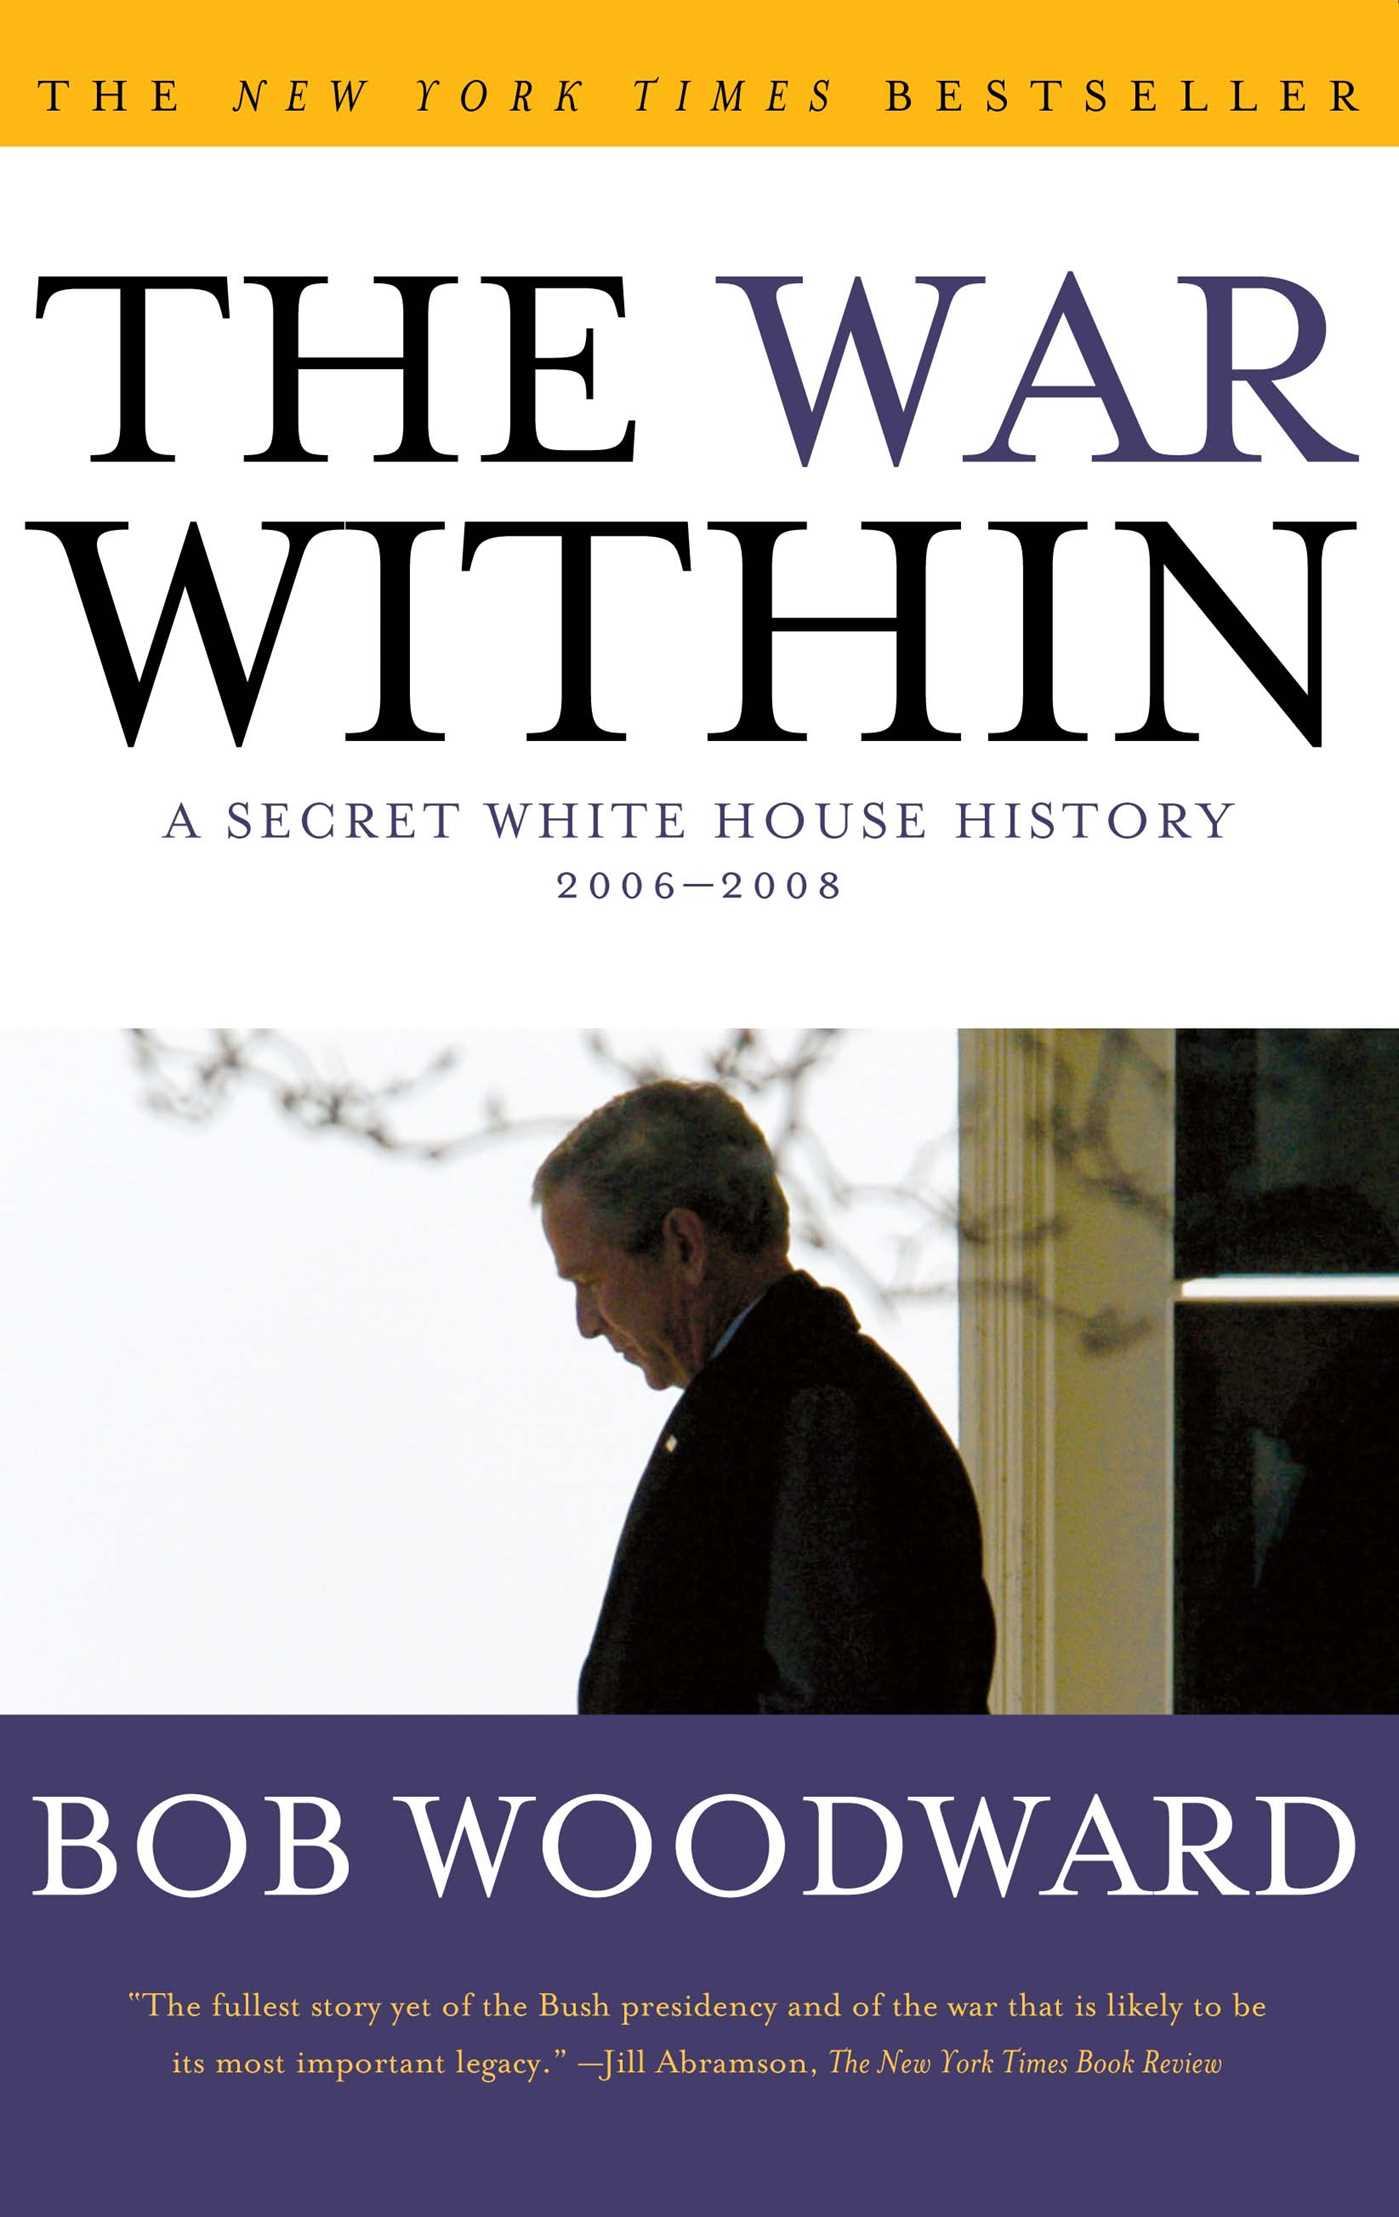 The war within 9781416560913 hr